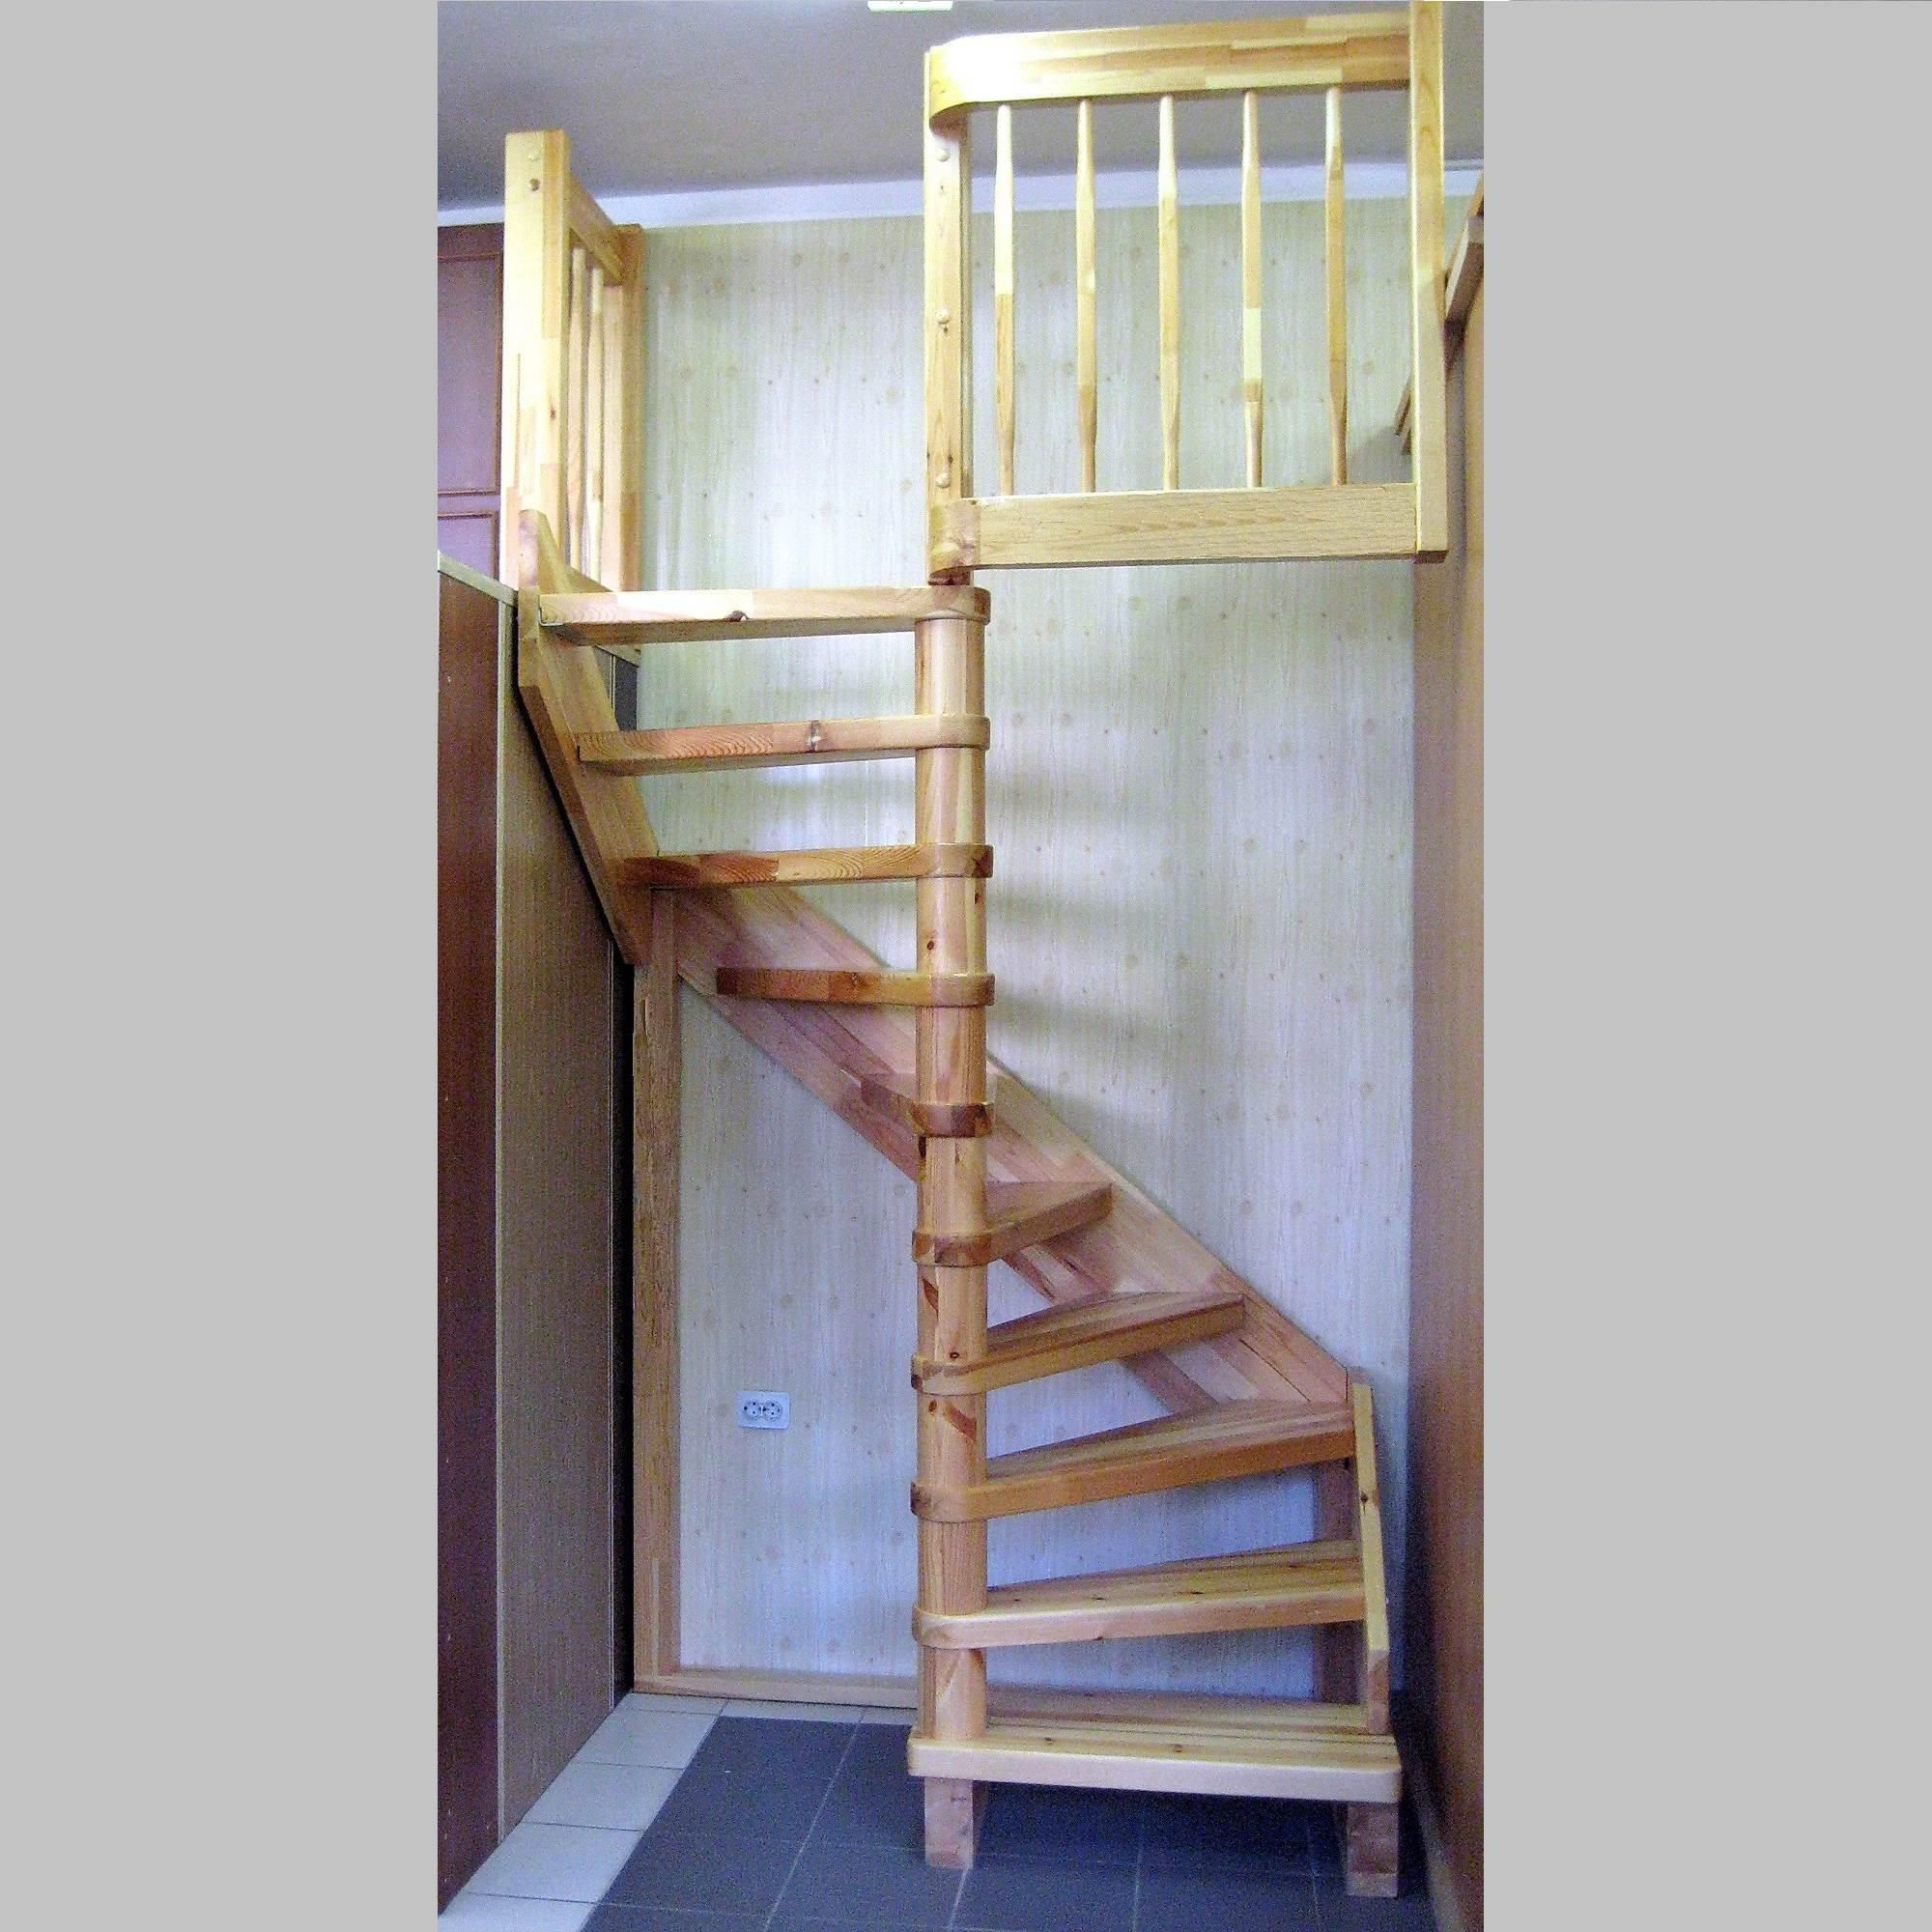 Staircase Ideas For Small Spaces: Rustic Natural Wooden Spiral Stairs For Small Space For